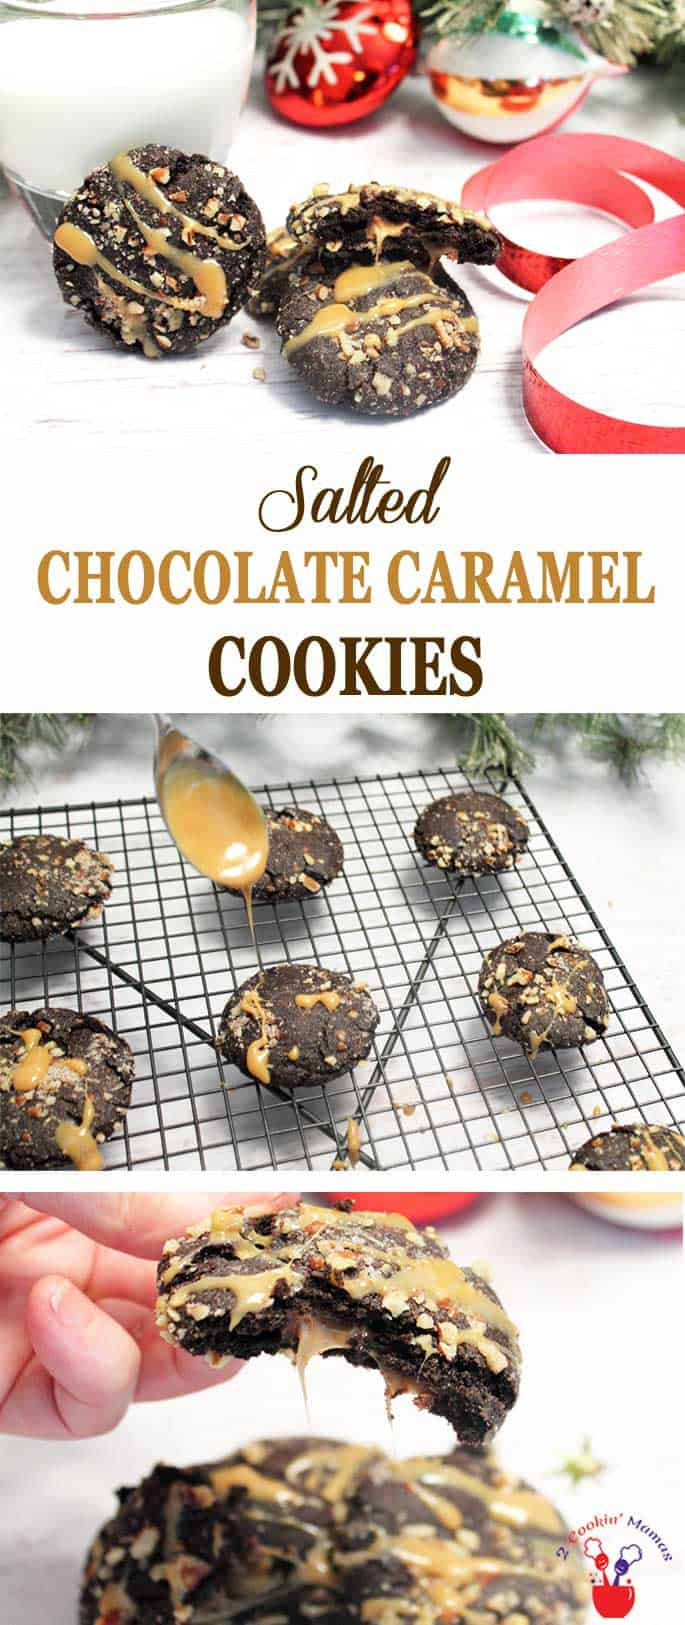 These Chocolate Caramel Cookies are easy to make & have a caramel surprise inside. It's like a molten lava cake in cookie form! #cookies #Christmascookies #Christmas #chocolate #caramel